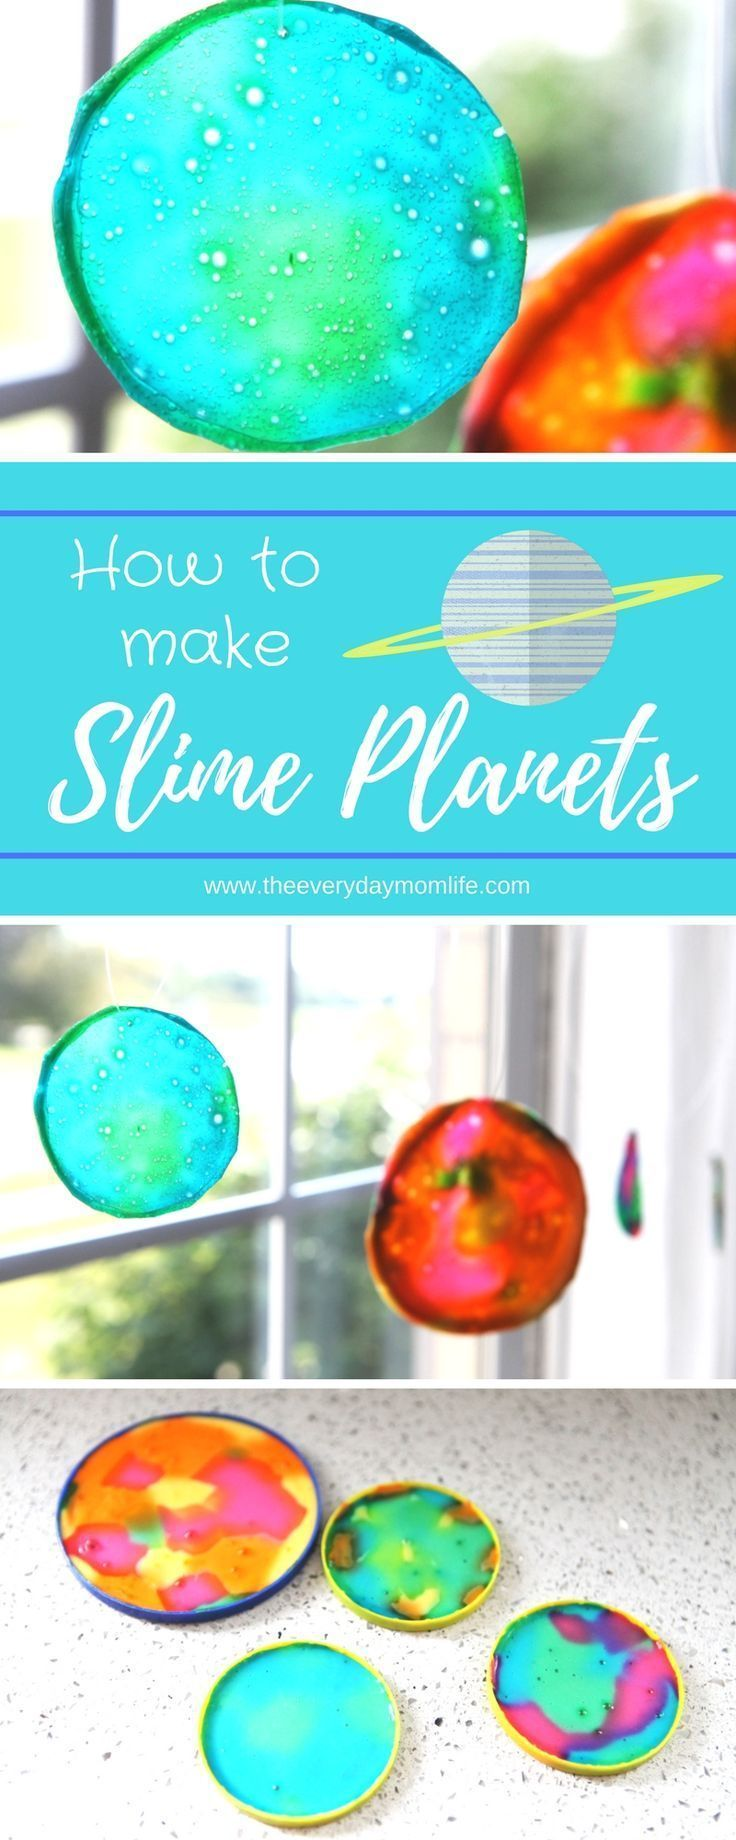 These slime planet sun catchers are the perfect way to teach kids about the solar system and create a fun art project together! // Article by The Everyday Mom Life